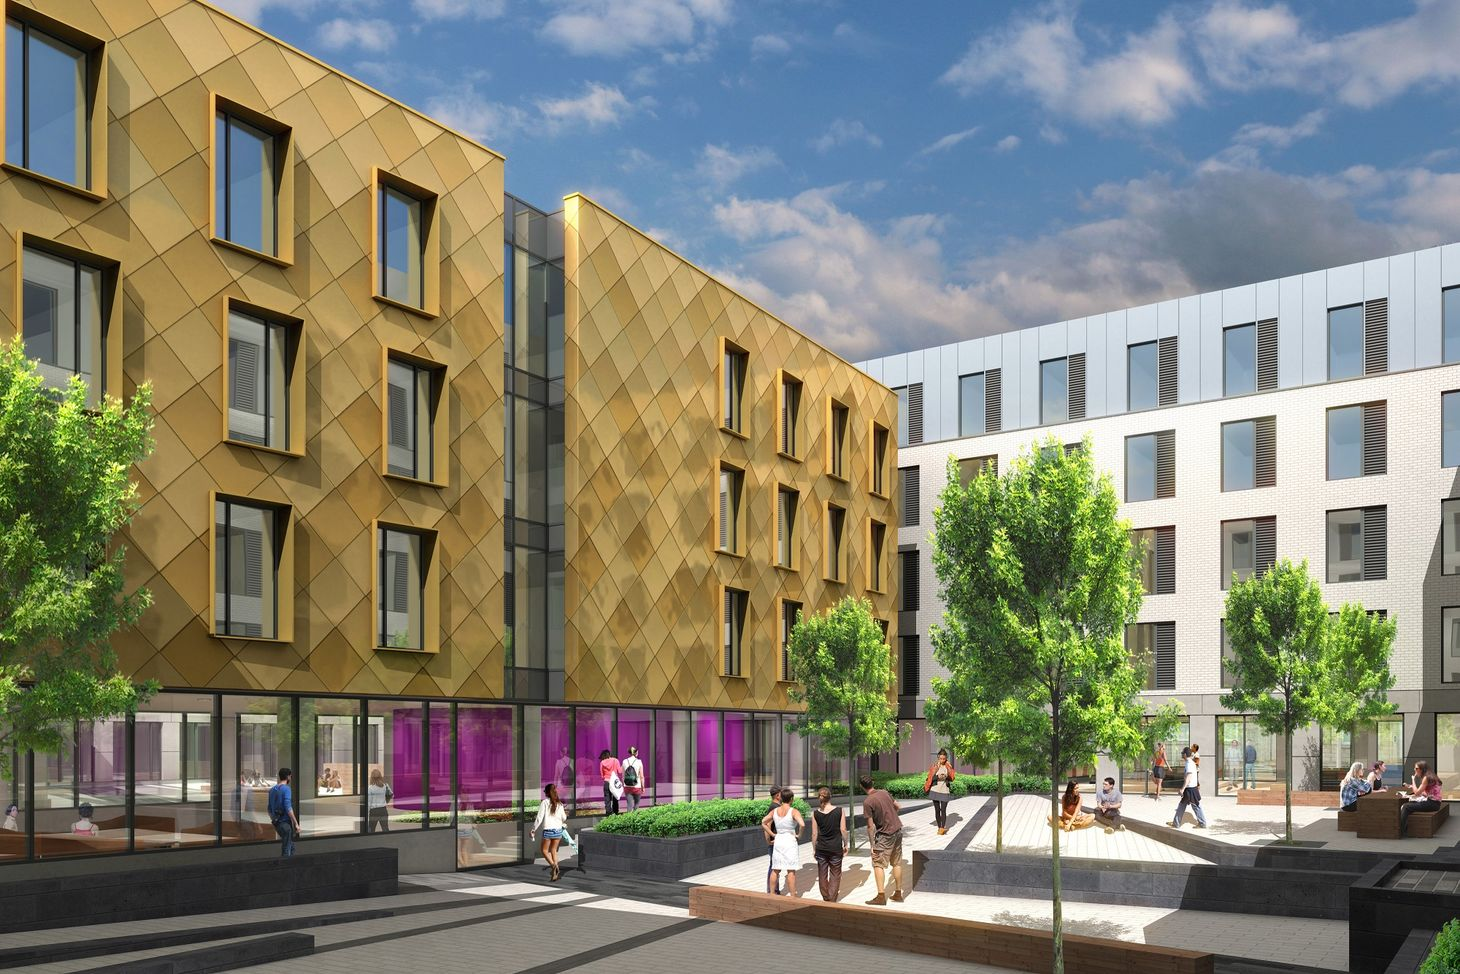 Manson scheme for 618 student bedspaces approved by Aberdeen City Council image